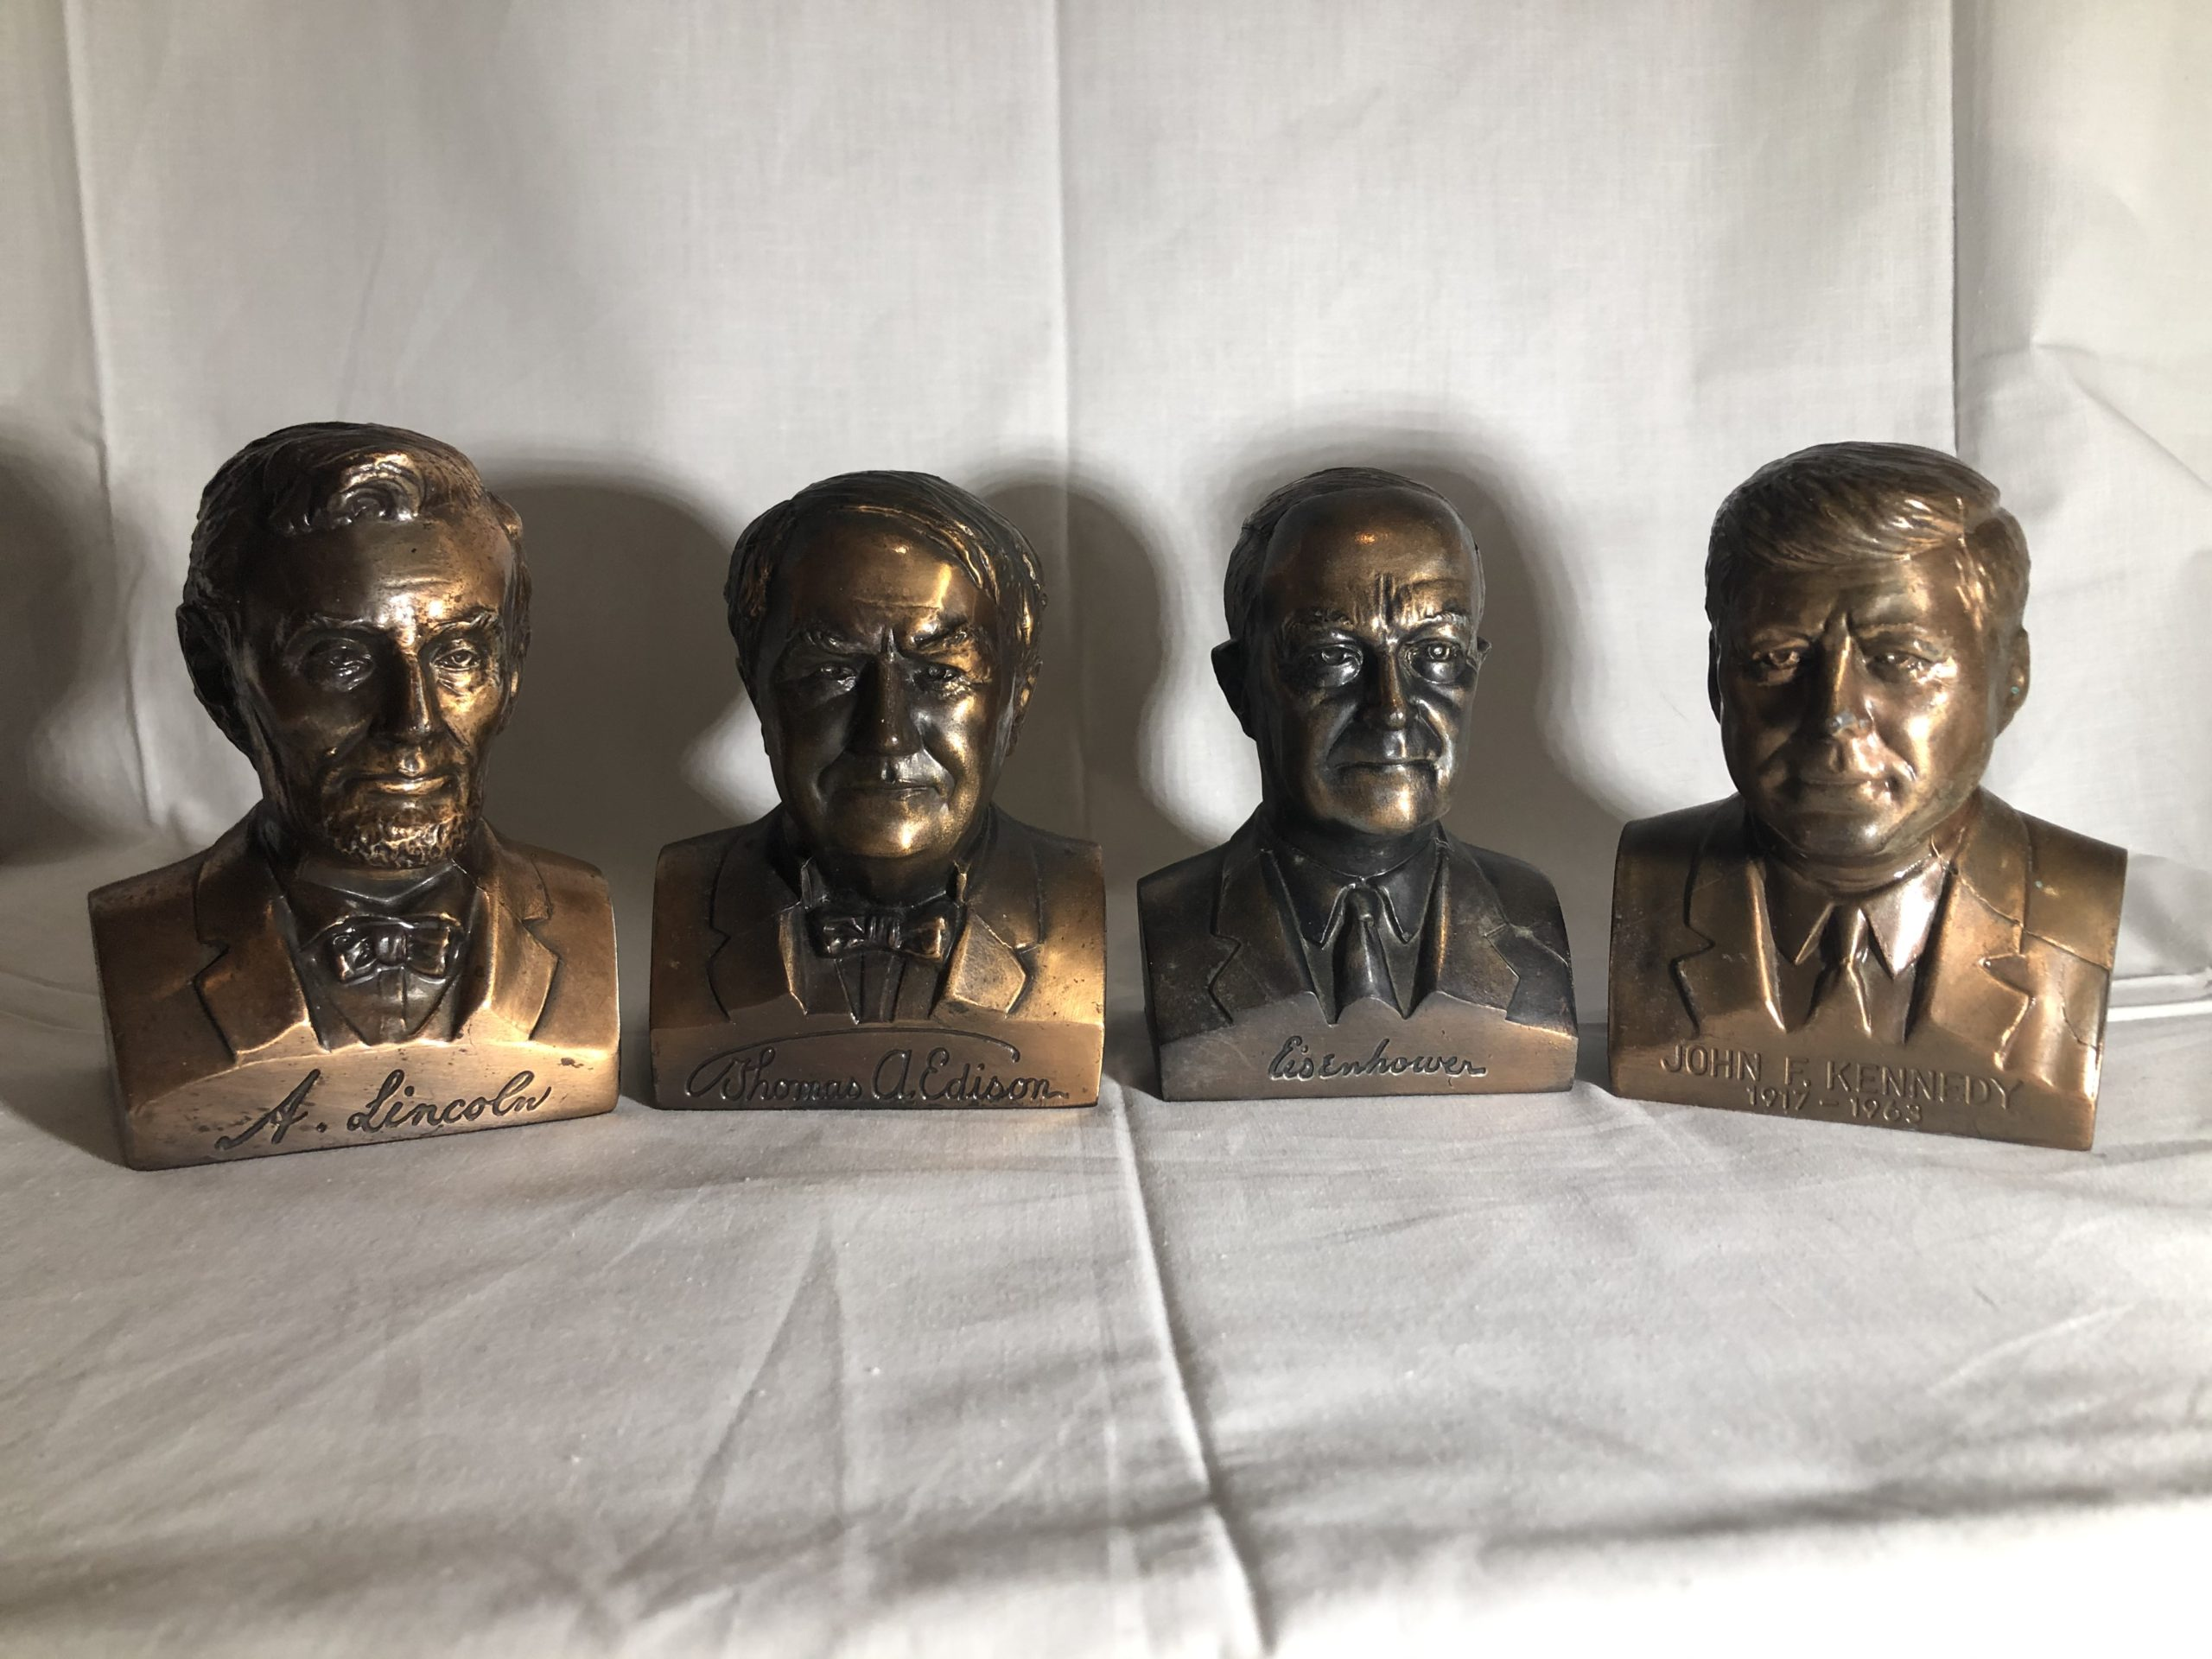 Lot of 4 Historical Figure Advertising Banks (U.S. Presidents & Thomas Edison)